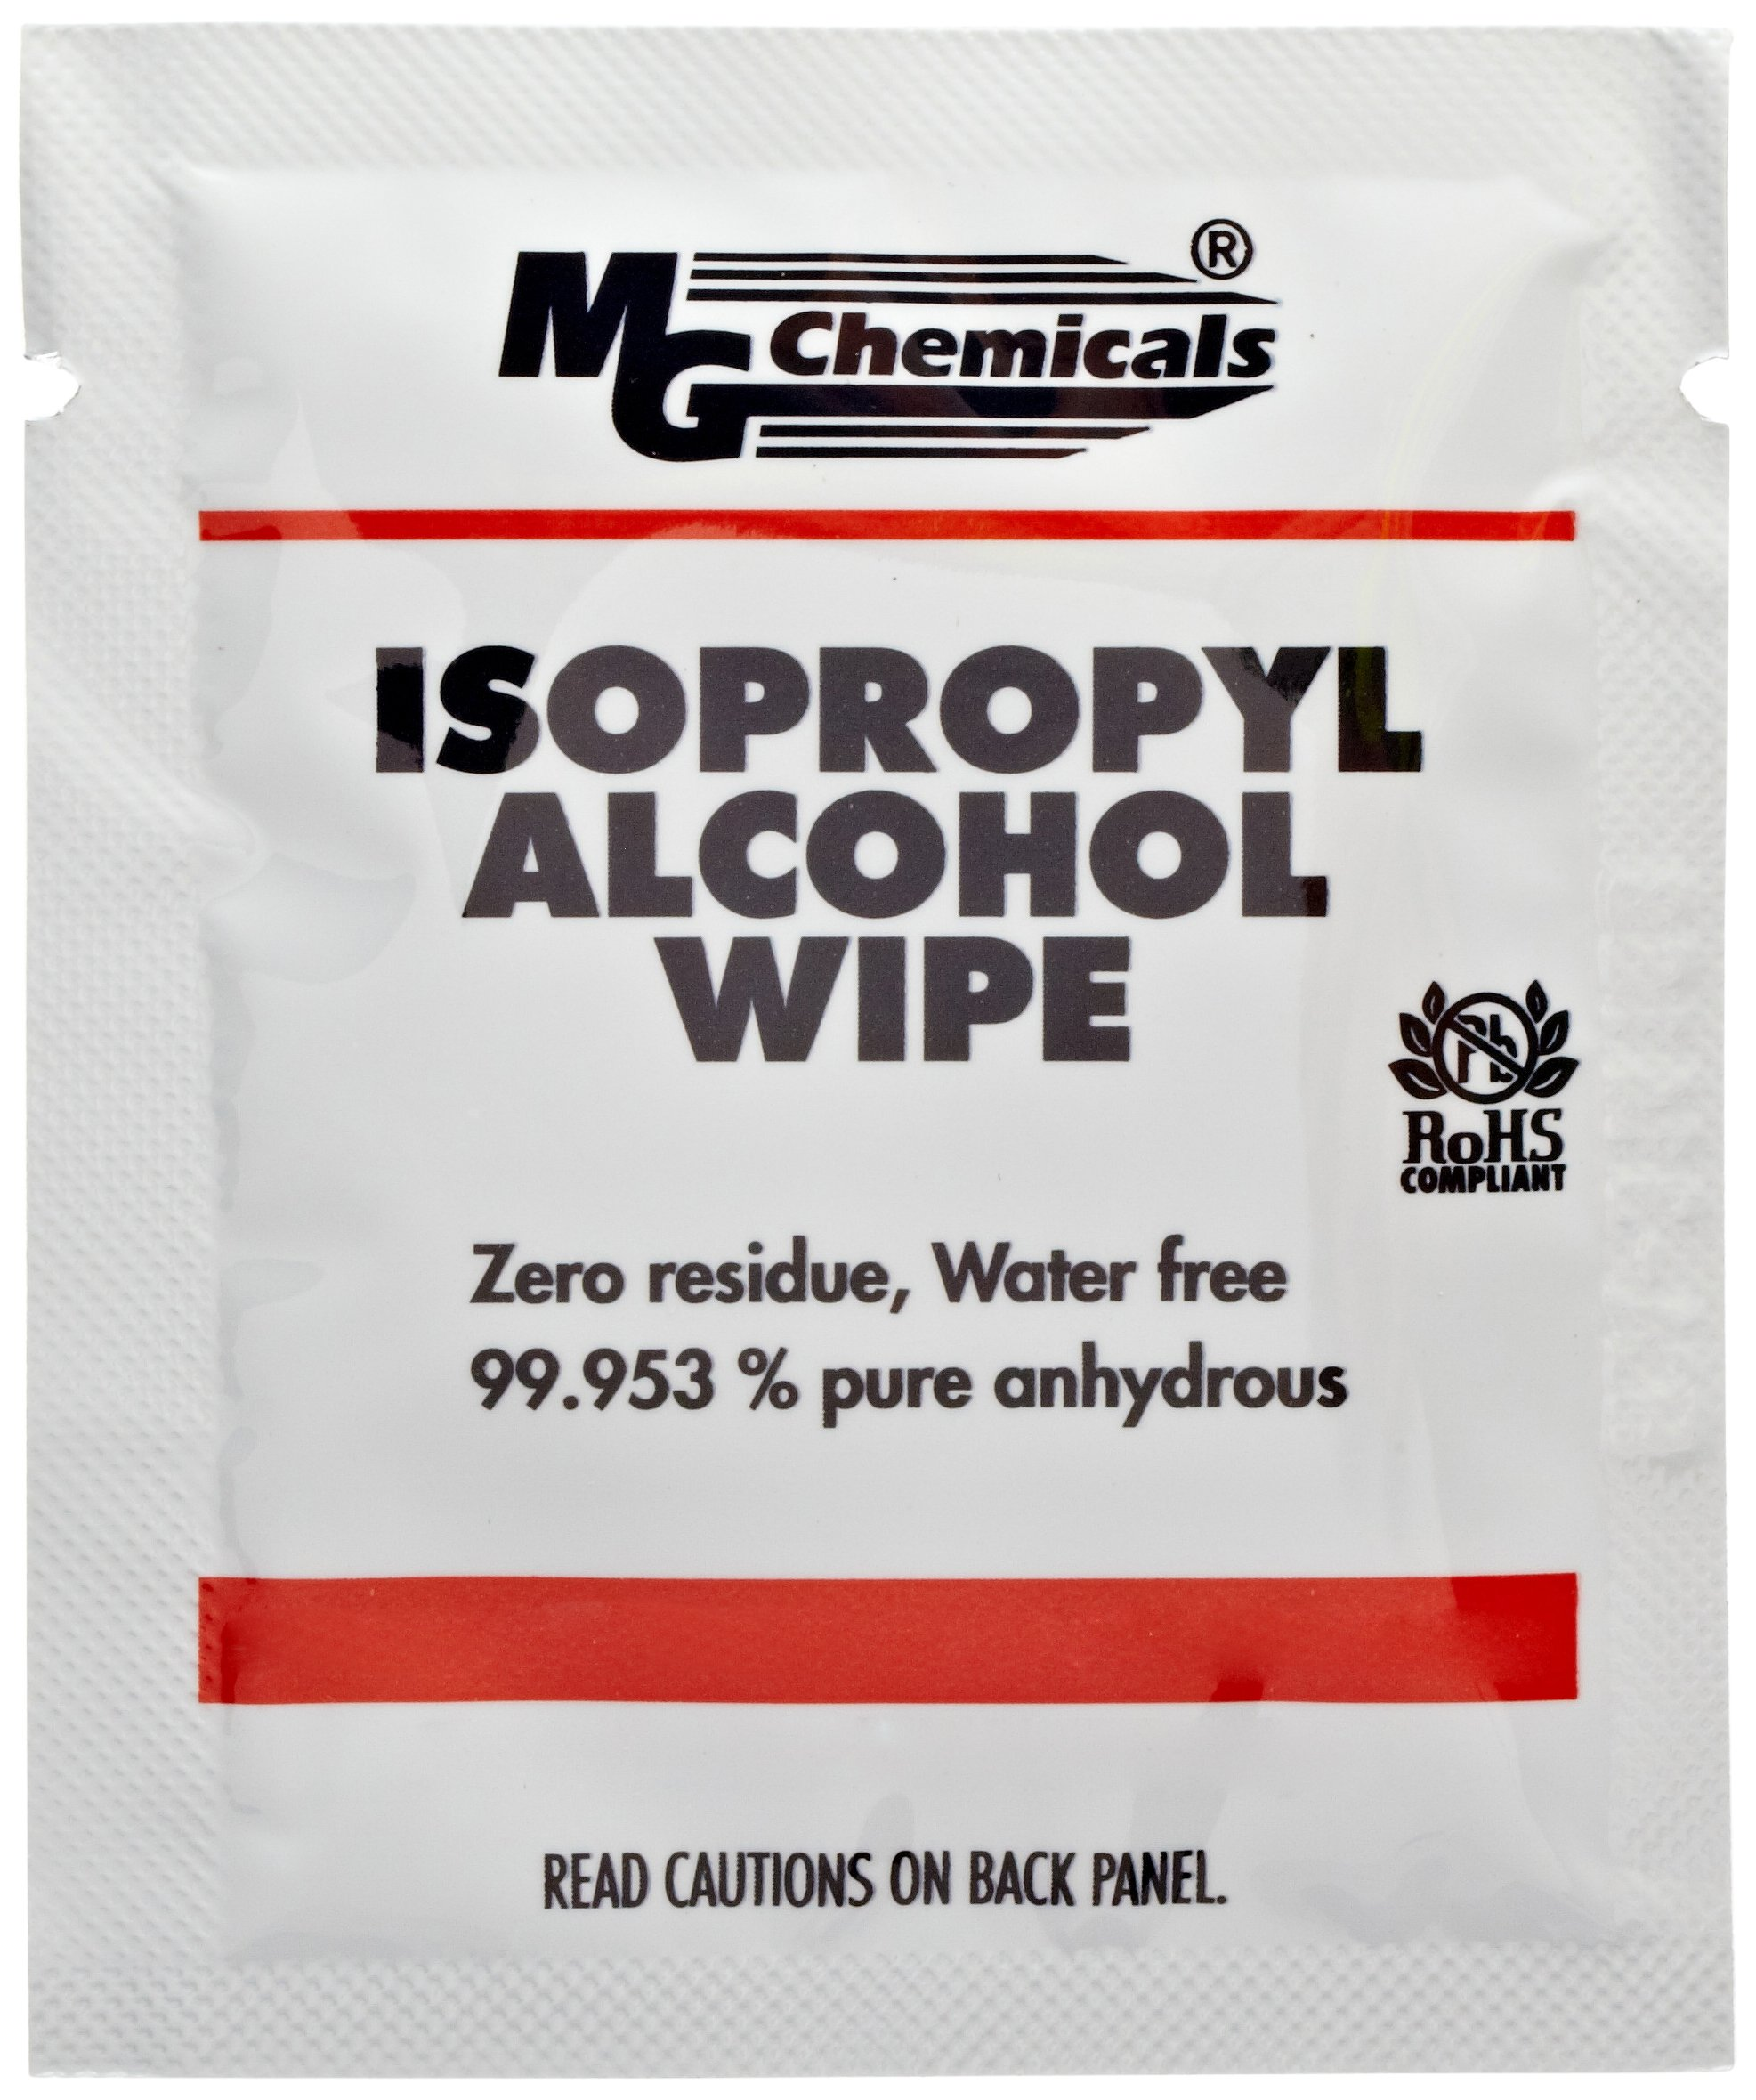 MG Chemicals 99.9% Isopropyl Alcohol Wipes, 6'' Length x 5'' Width (Bag of 50) by MG Chemicals